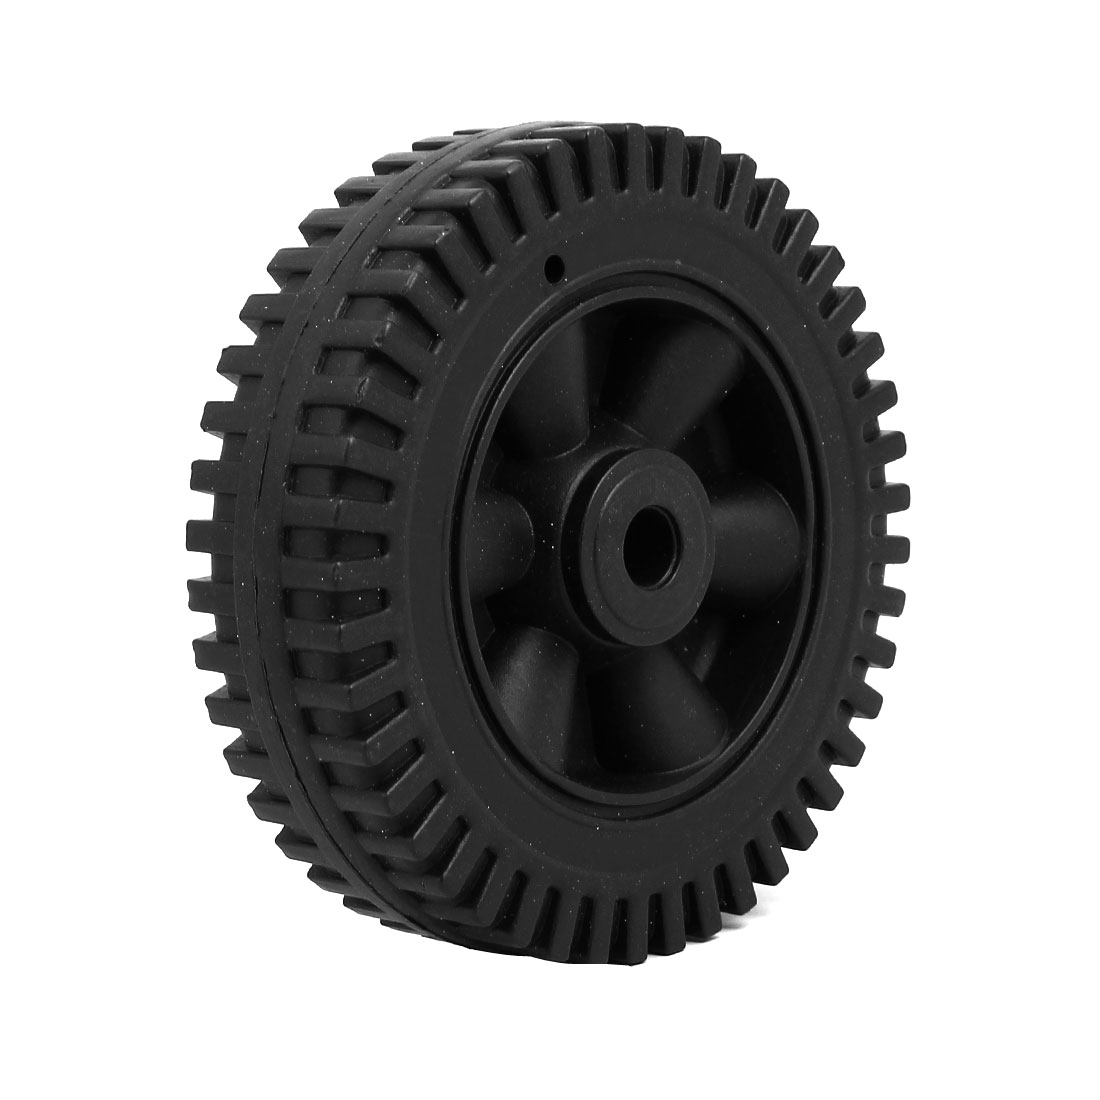 150mm 6-inch Dia 12.5mm Inner Bore Plastic Air Compressor Wheel Black